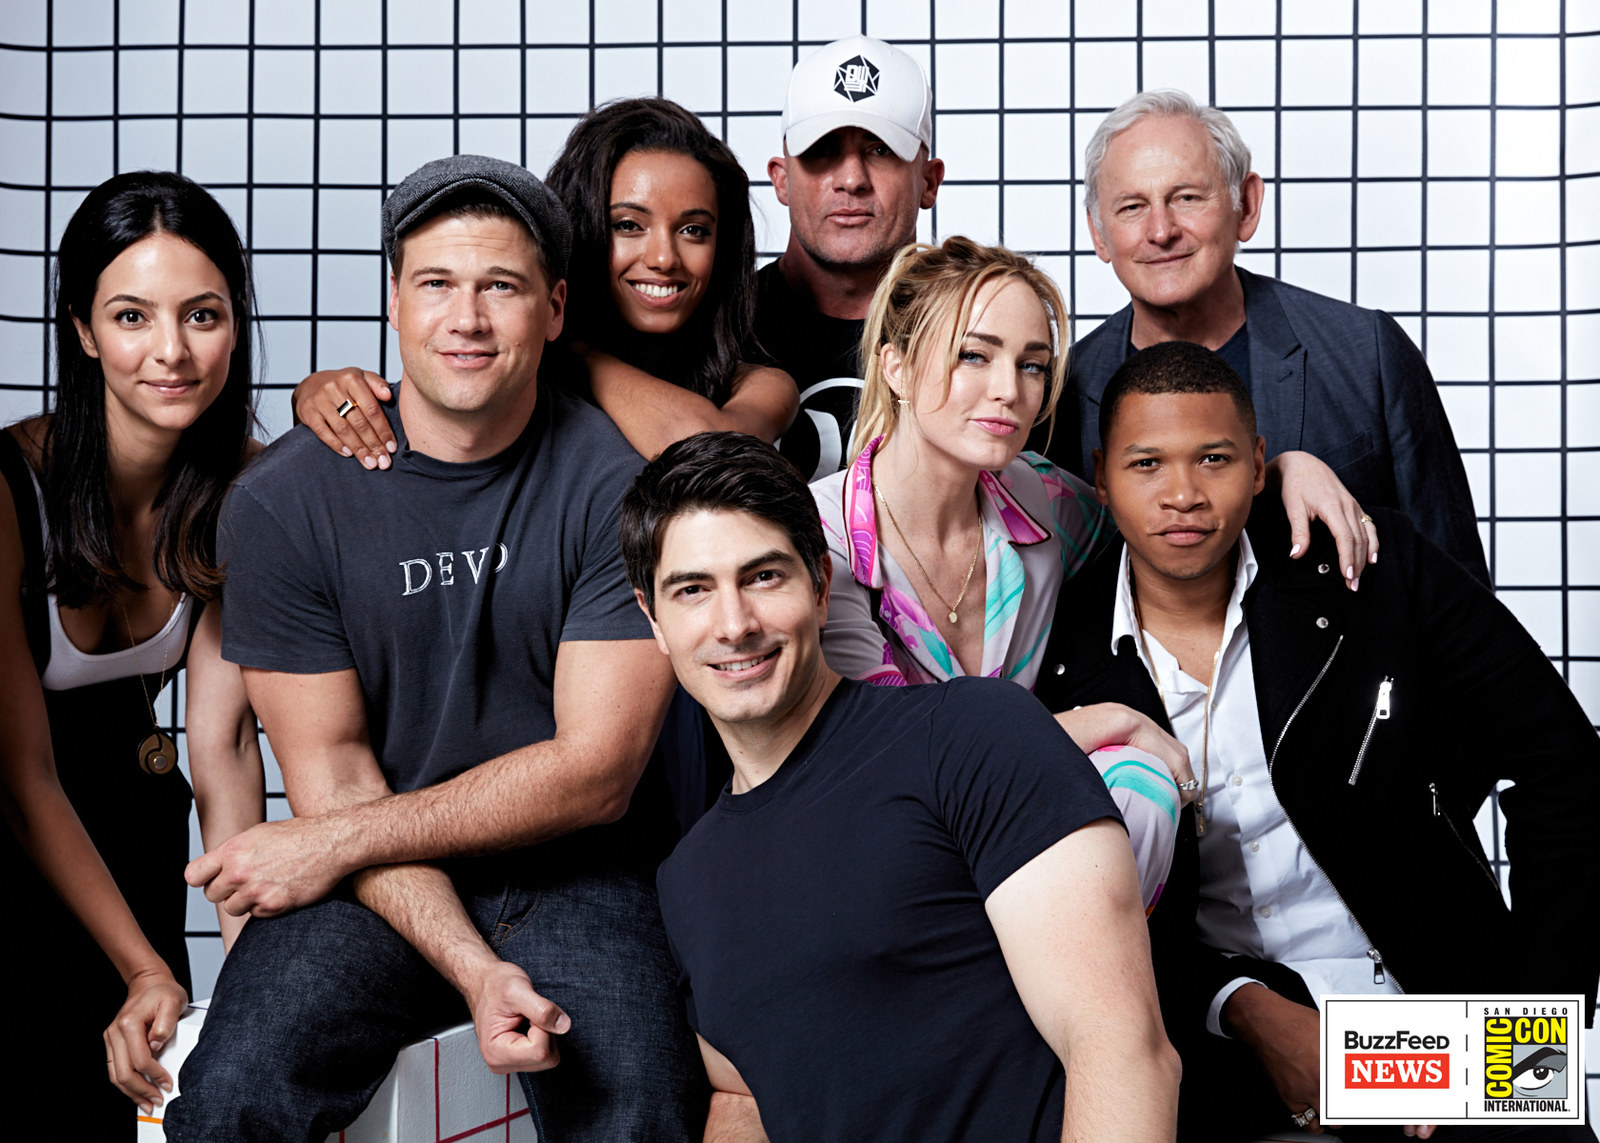 Legends of Tomorrow<br /><br />Tala Ashe, Nick Zano, Maisie Richardson-Sellers, Brandon Routh, Dominic Purcell, Caity Lotz, Victor Garber és Franz Drameh.